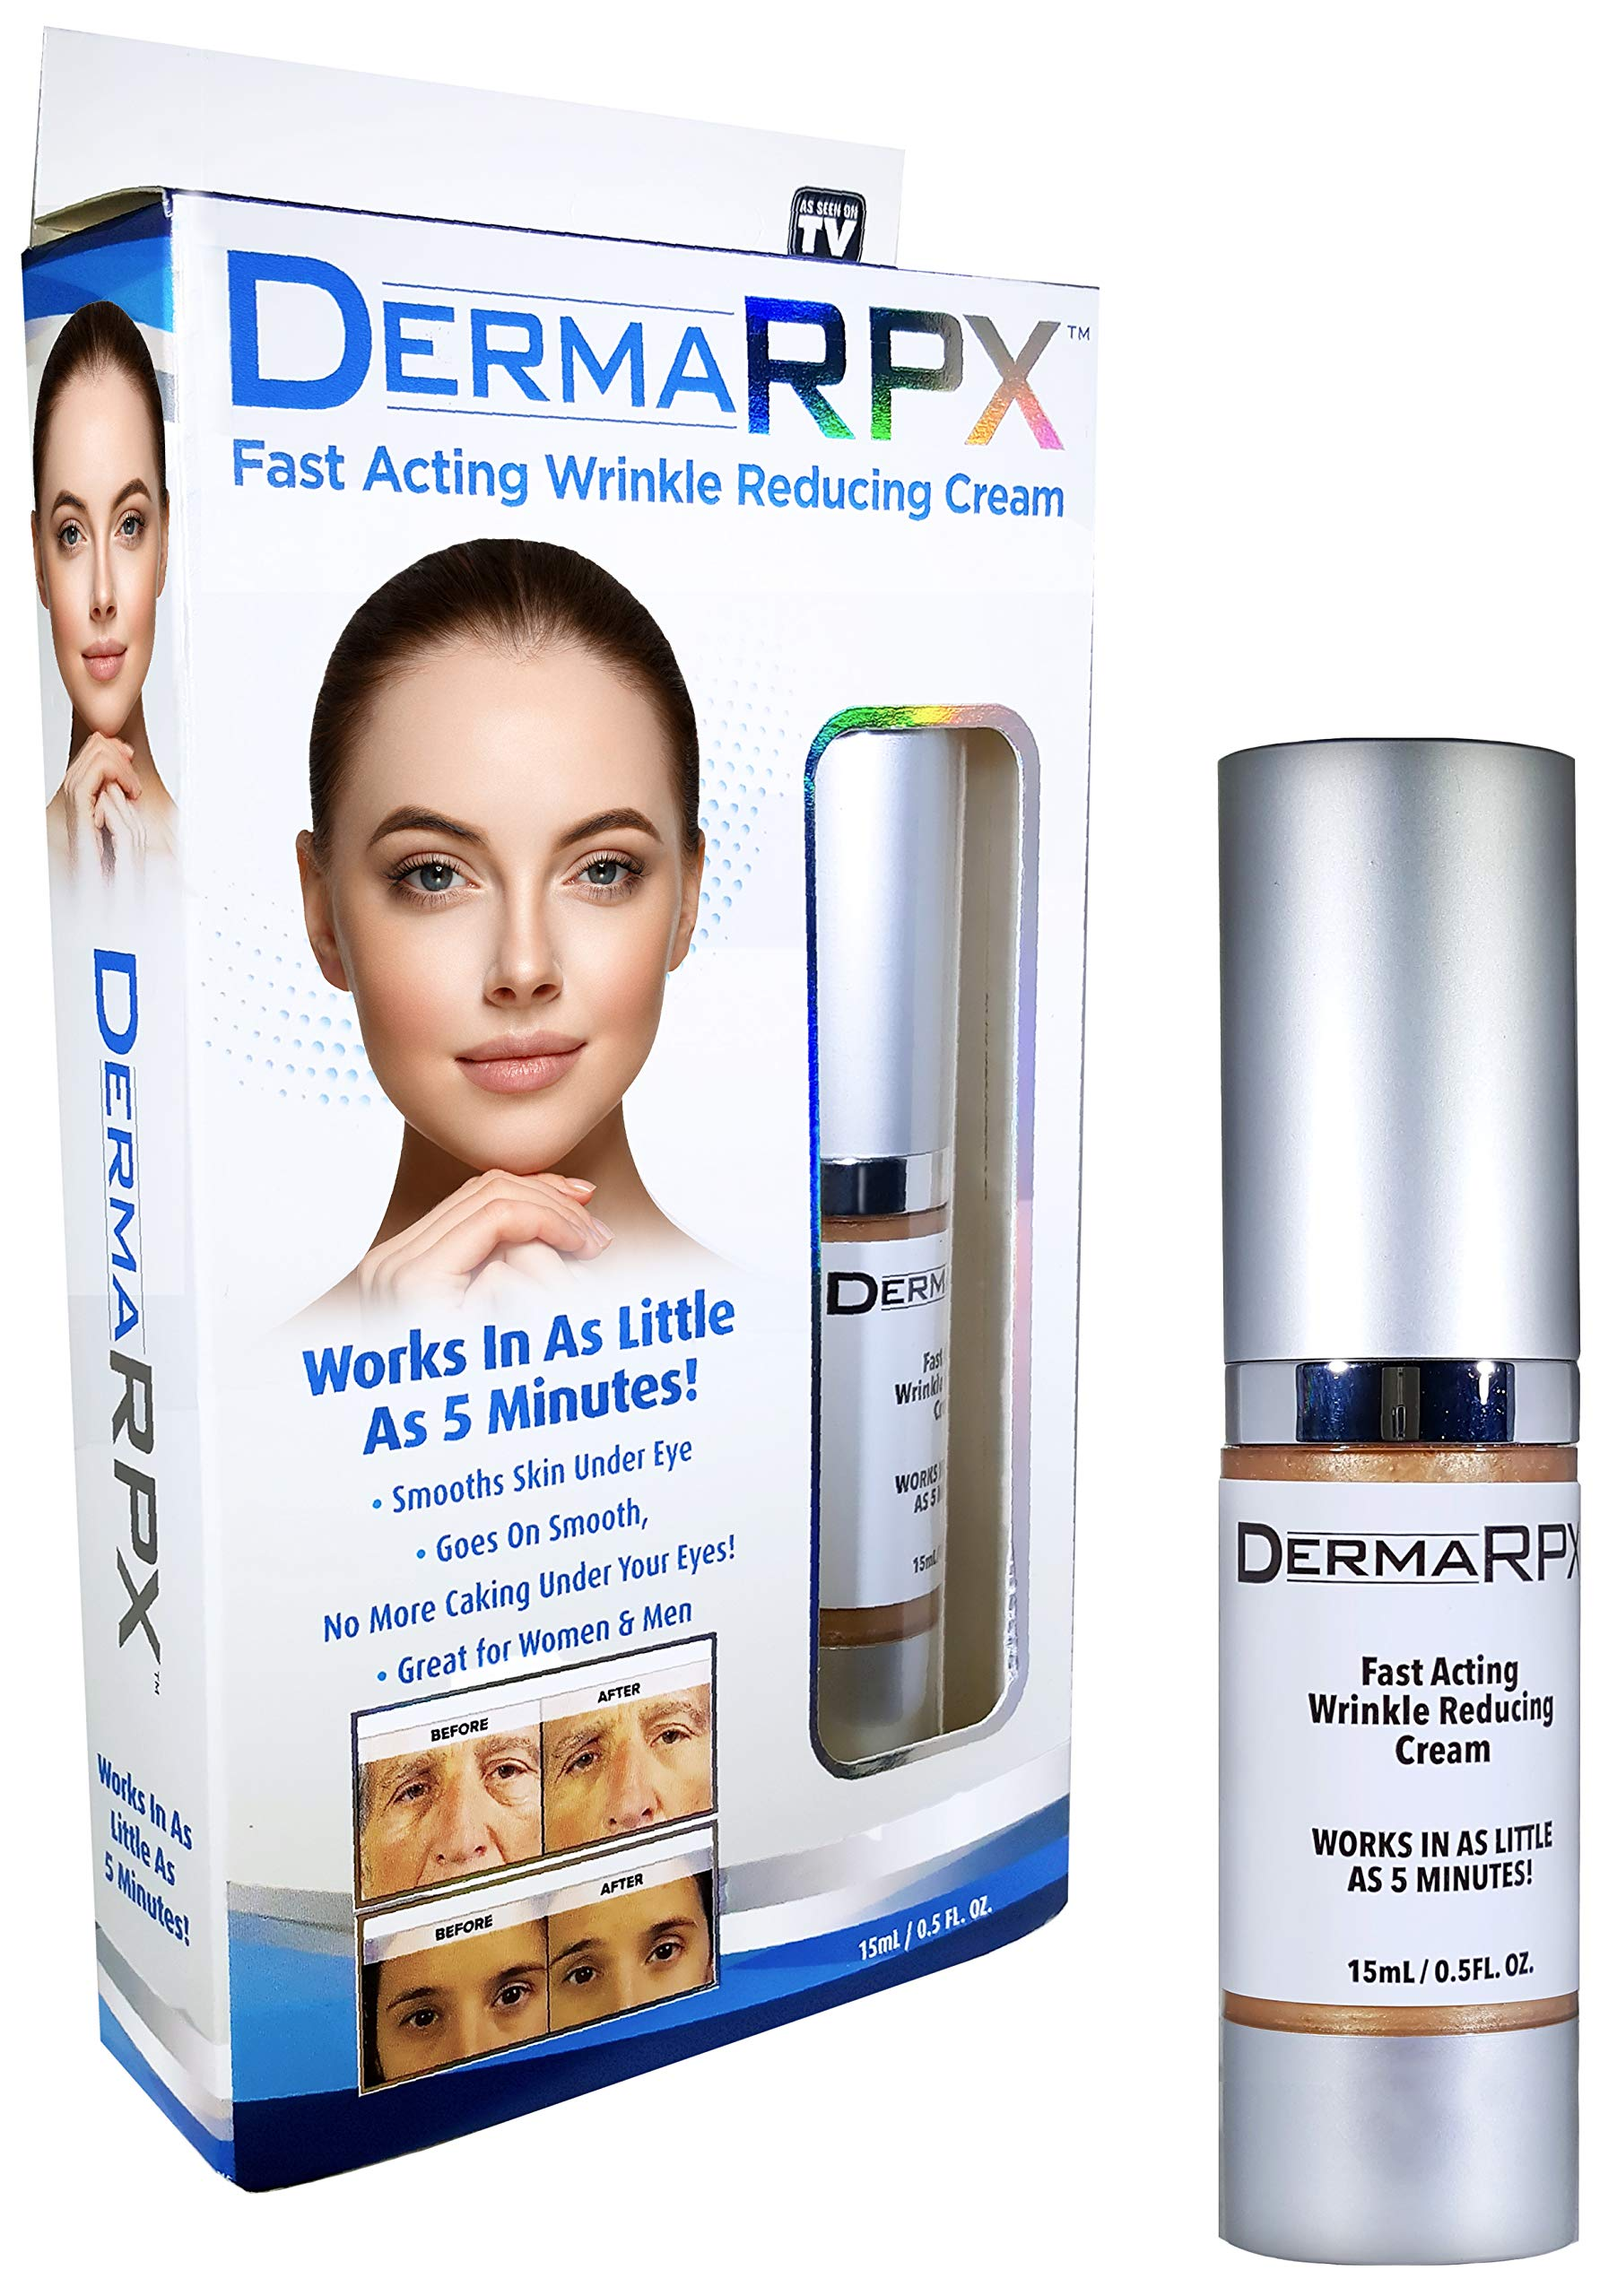 DERMA RPX with Hyaluronic Acid, 5-Minute Wrinkle and Fine Lines remover, Eye Bags Reducer Anti-aging Cream As Seen On TV by DermaRPX